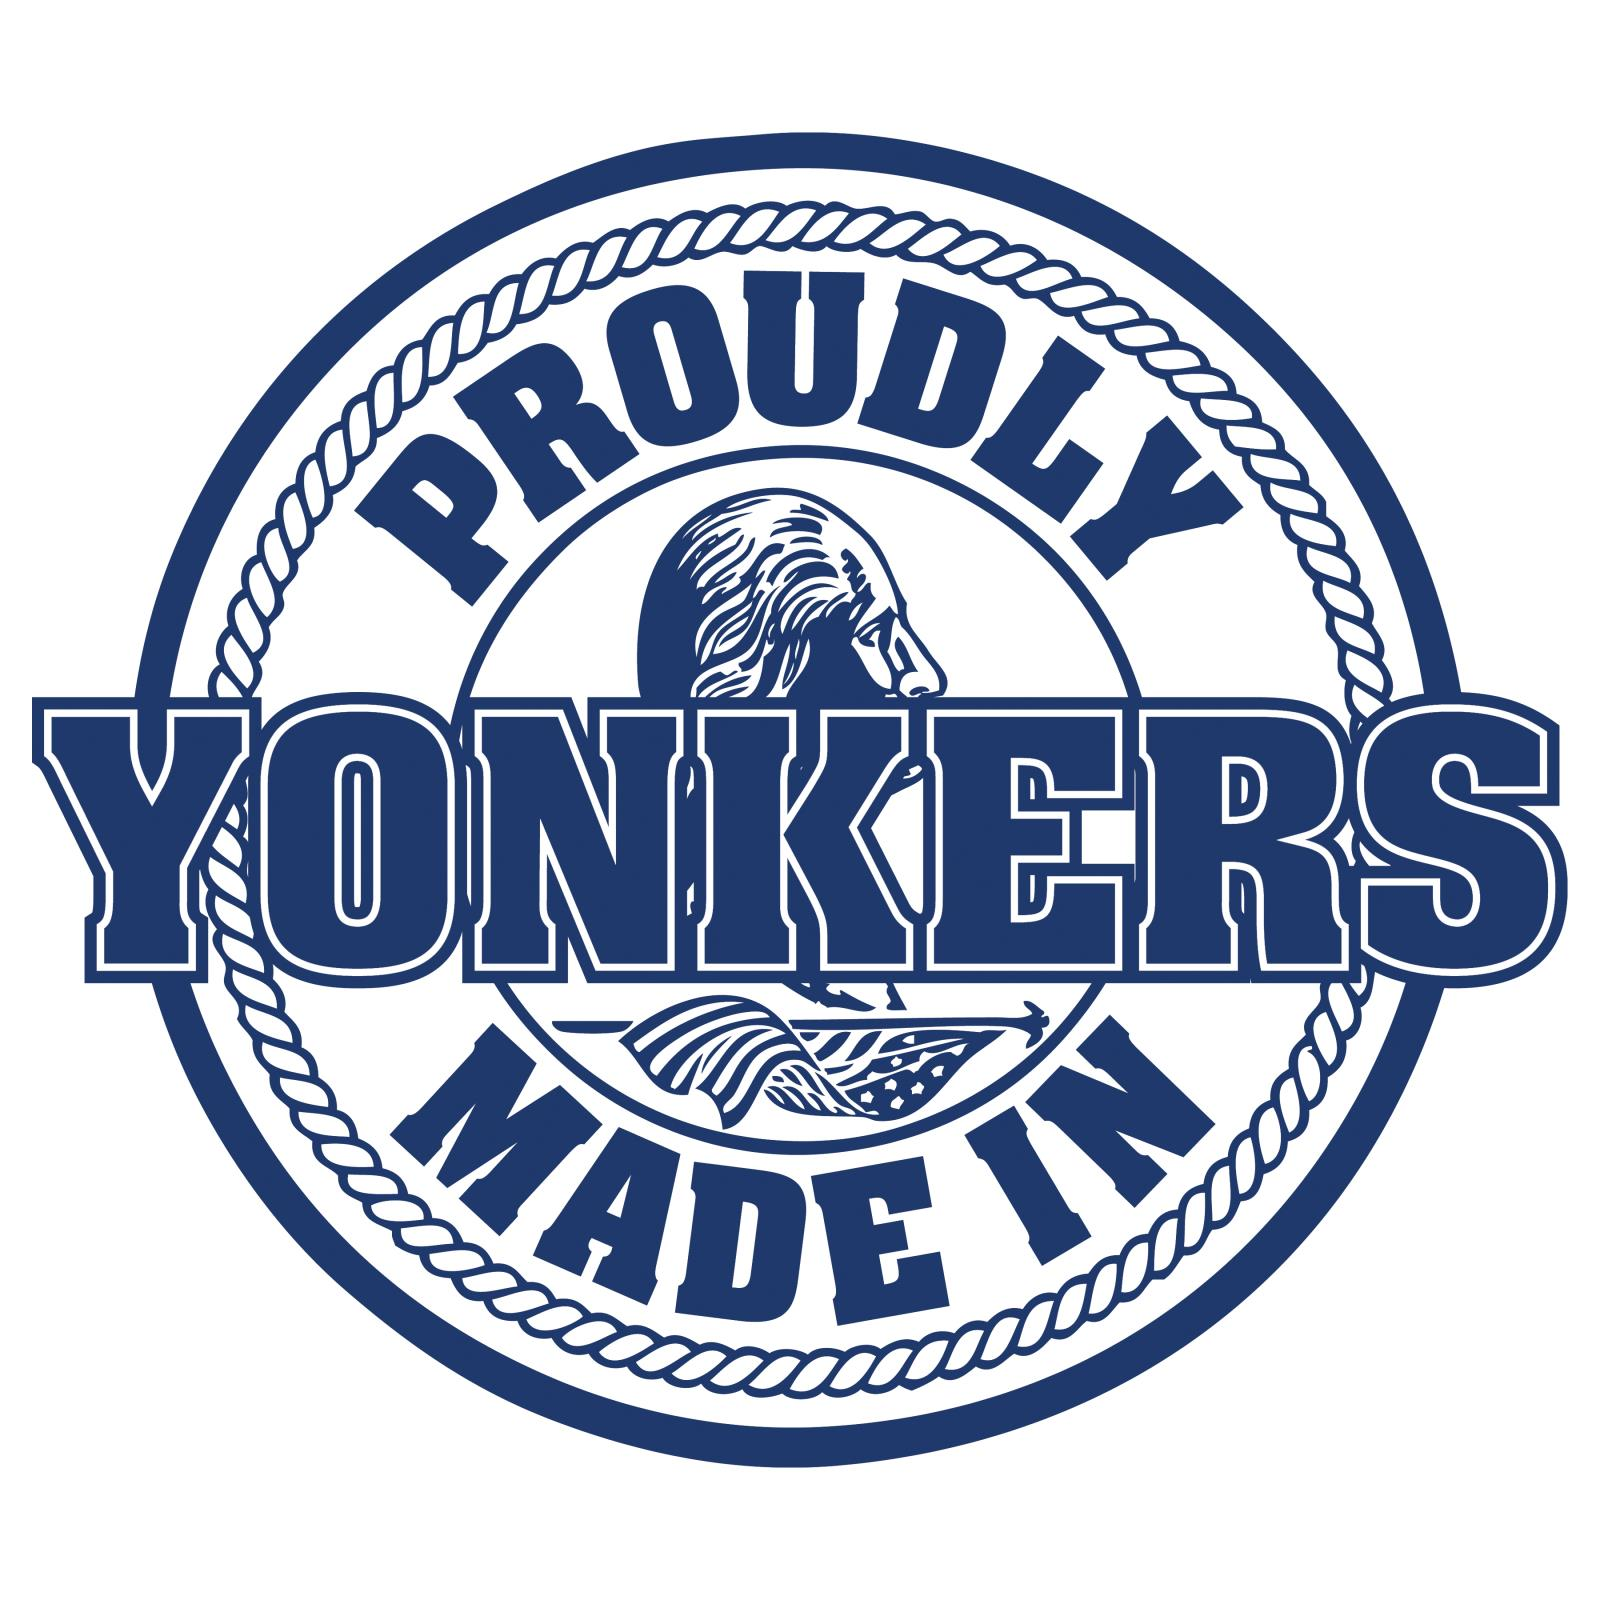 Request A Made In Yonkers Stickers City Of Yonkers Ny